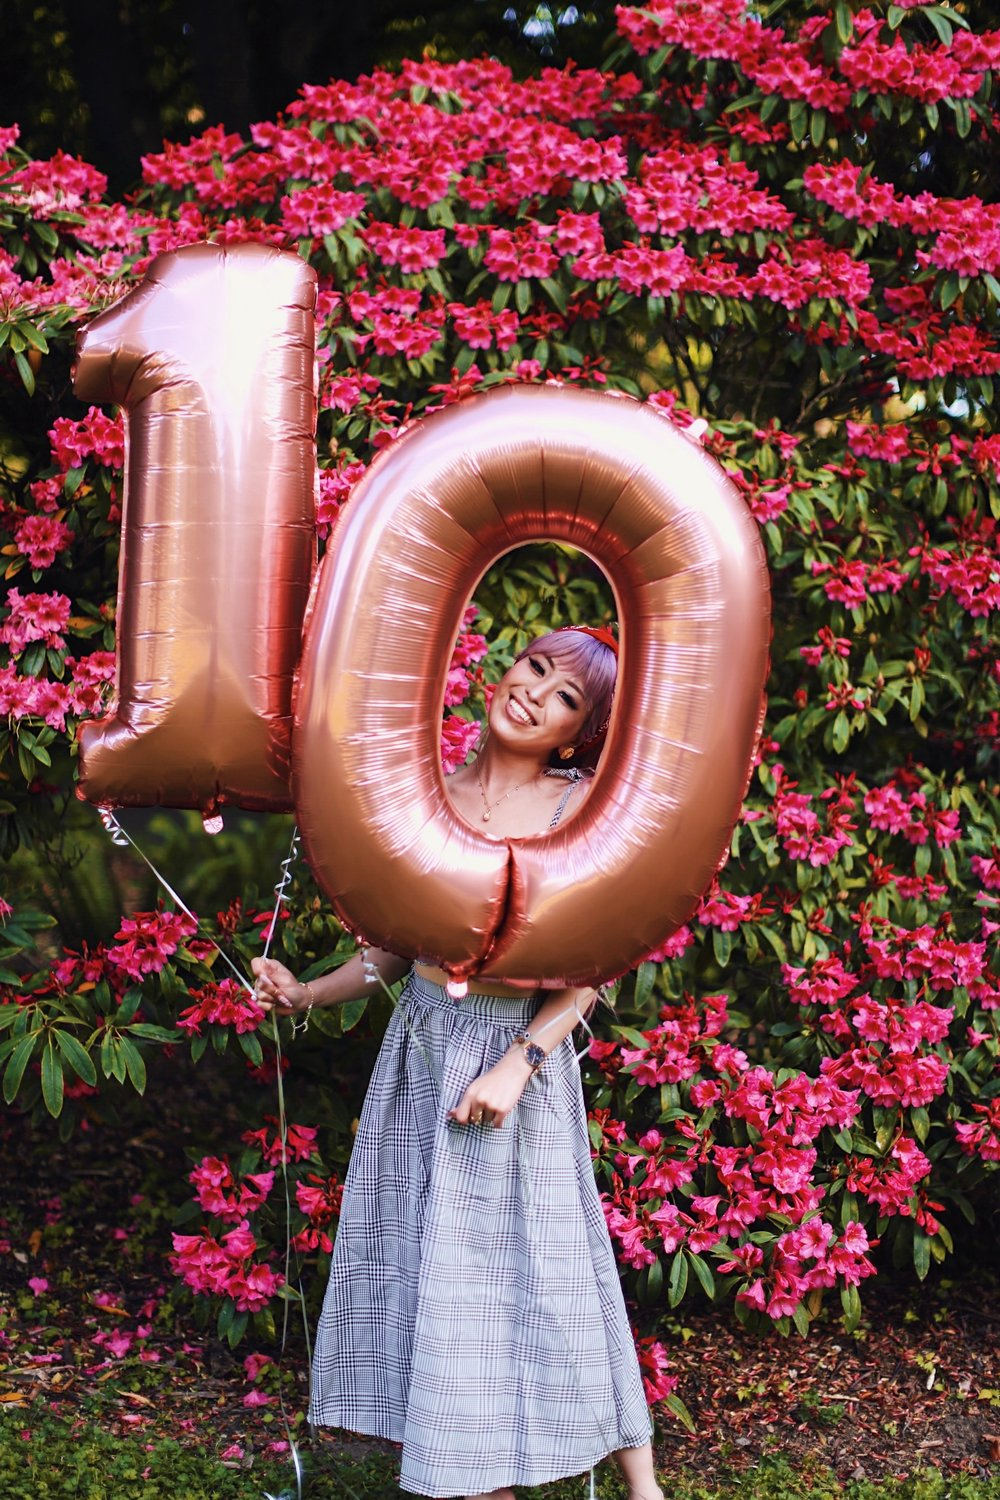 Aika's Love Closet-Seattle Style Life Style Blogger-Japanese-10 Year Anniversary-living in America-what I've learned from Living Abroad-life lessons-pink hair-zero uv heart sunglasses-rose gold balloons-smile 4